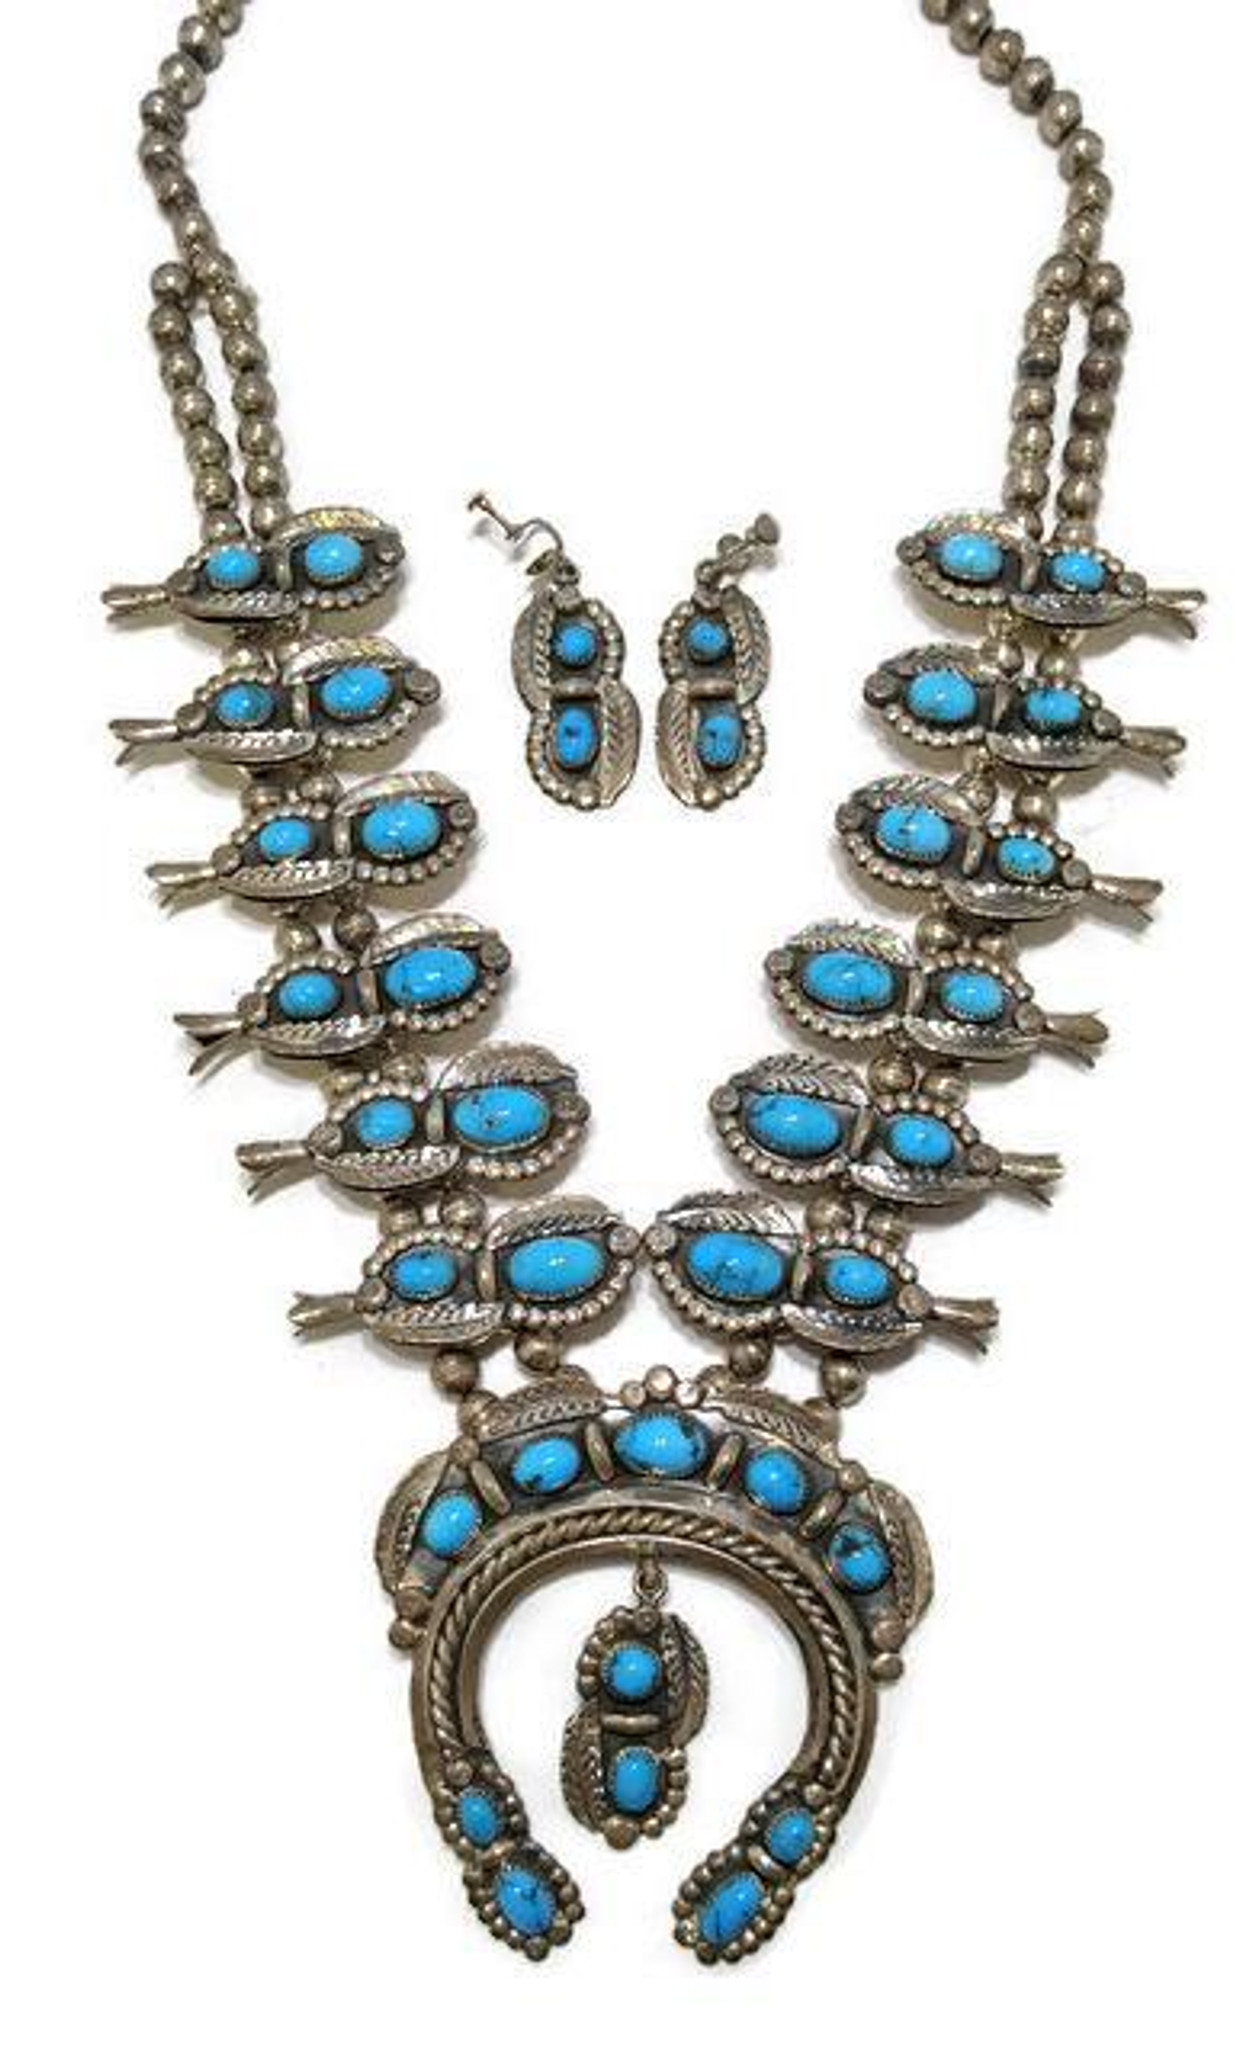 86e1574a2 Navajo old pawn squash blossom necklace with a makers mark of